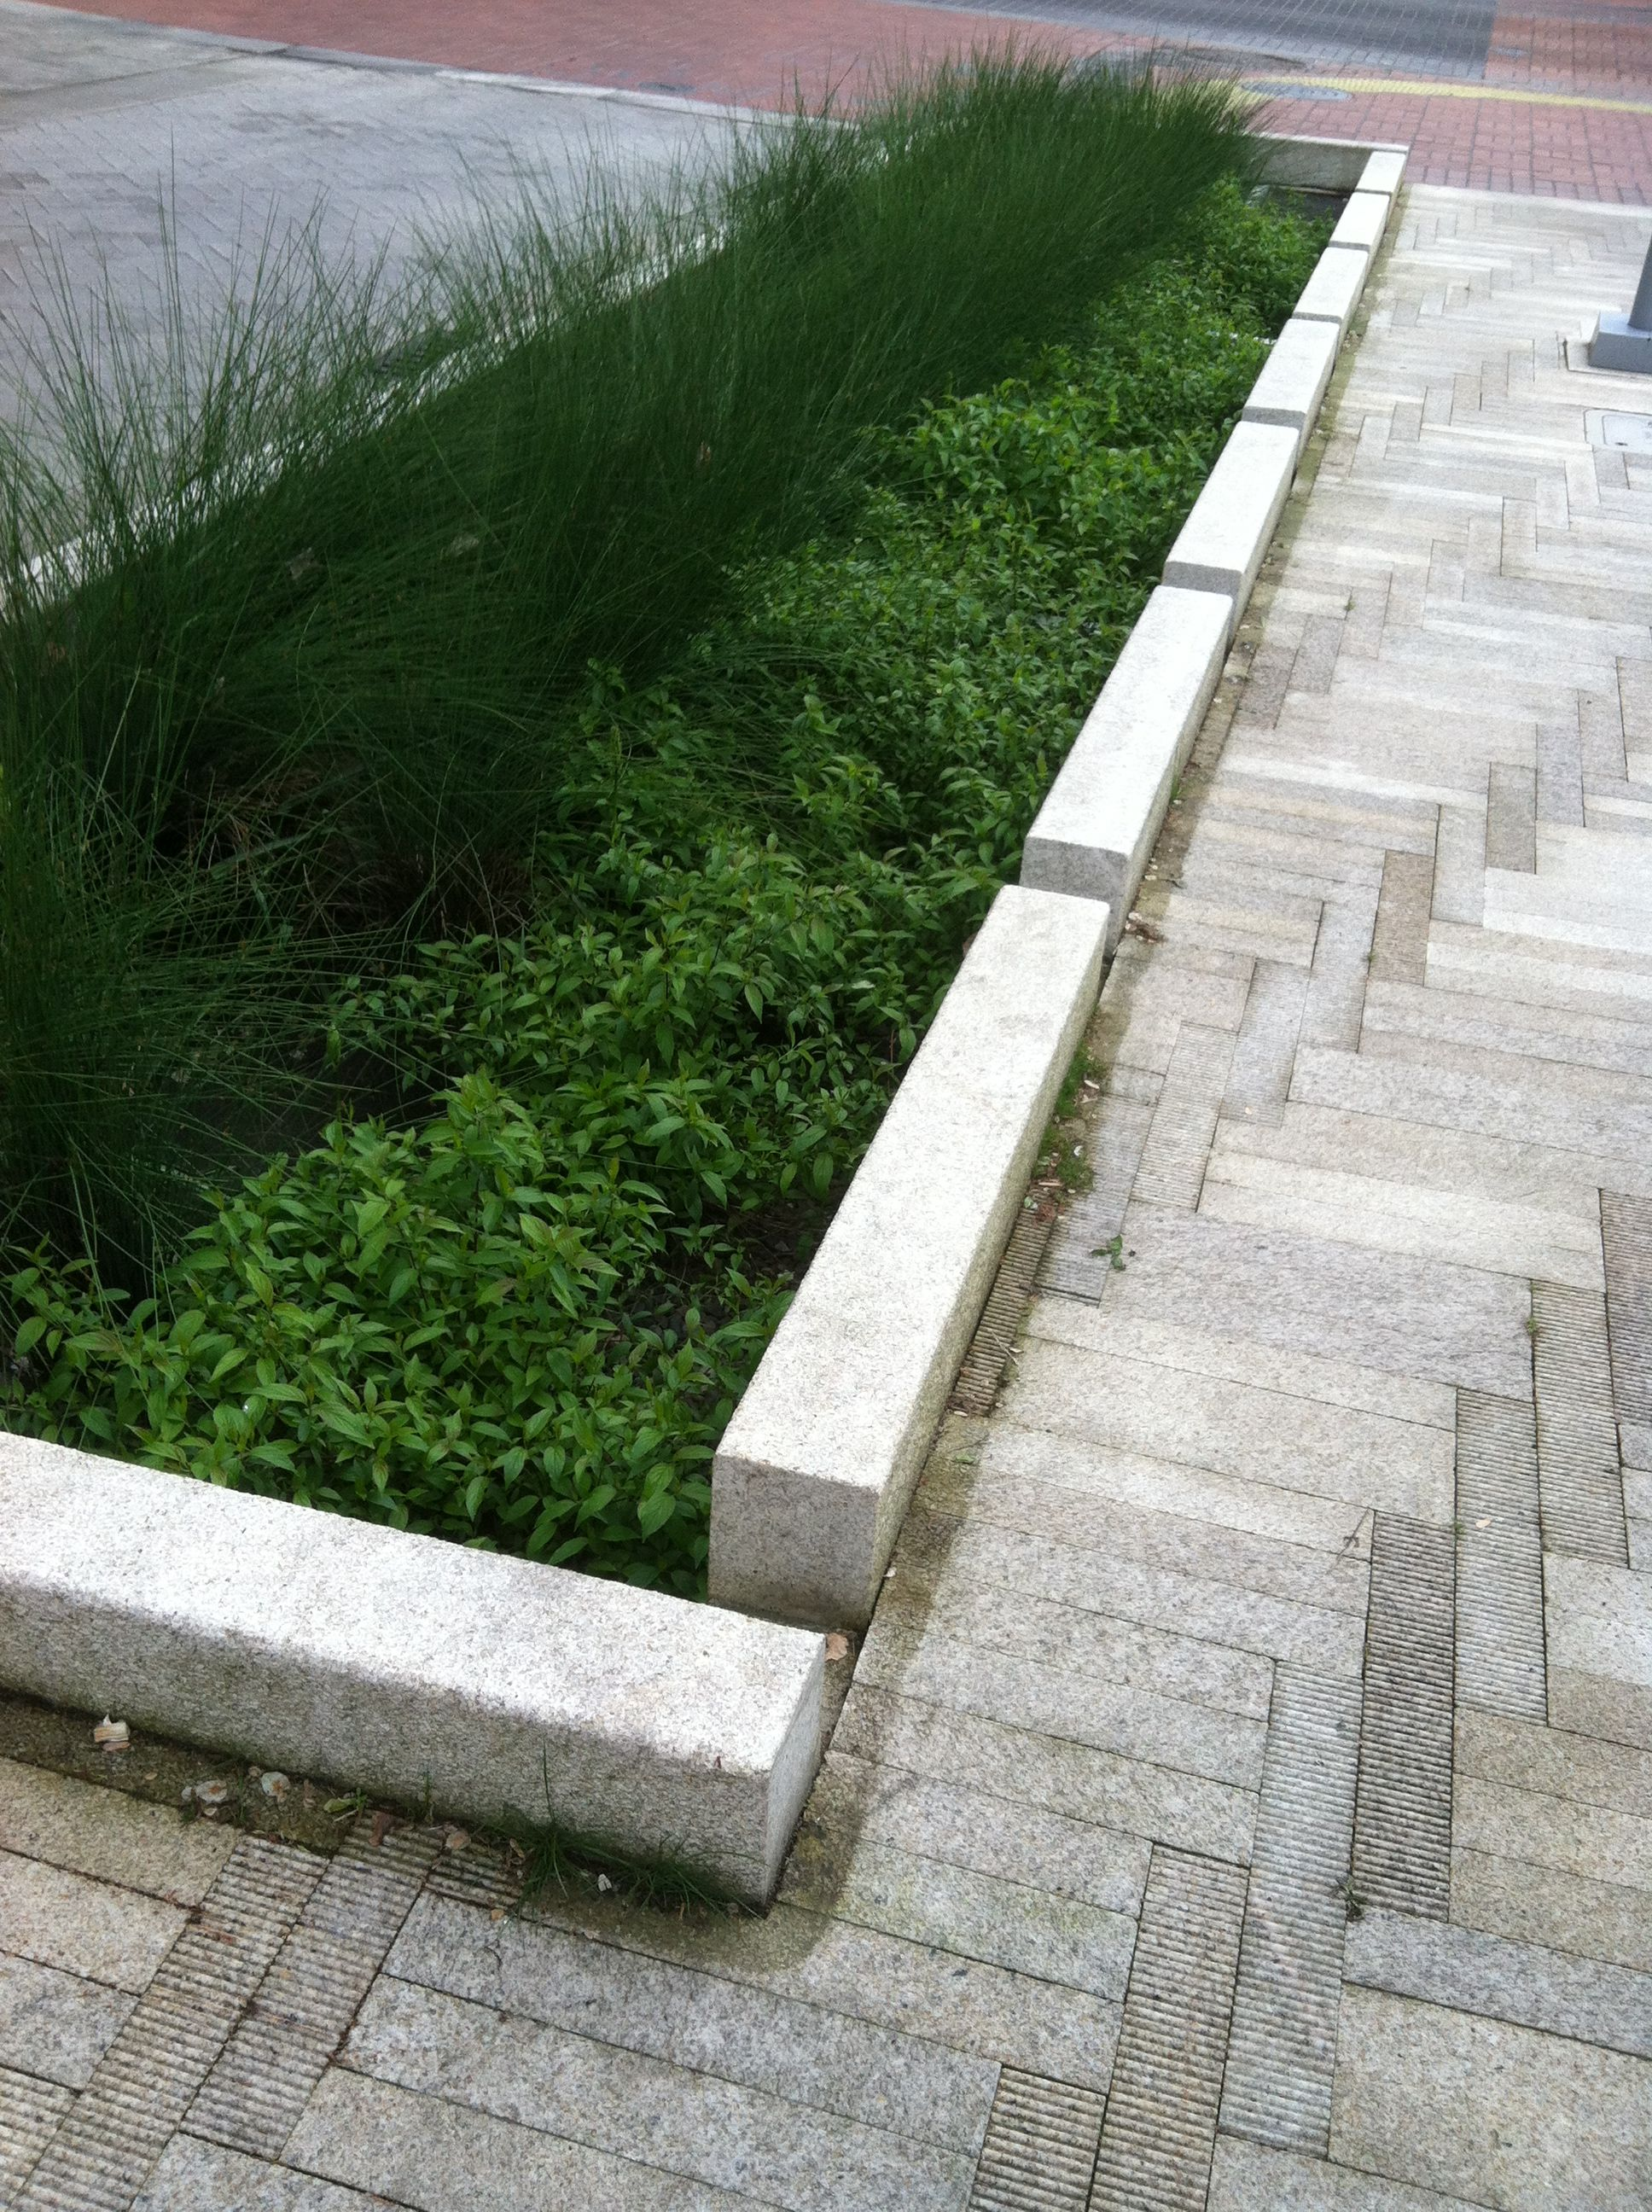 Yes Green Infrastructure: Simple Urban Rain Garden. The Openings In The Curb And